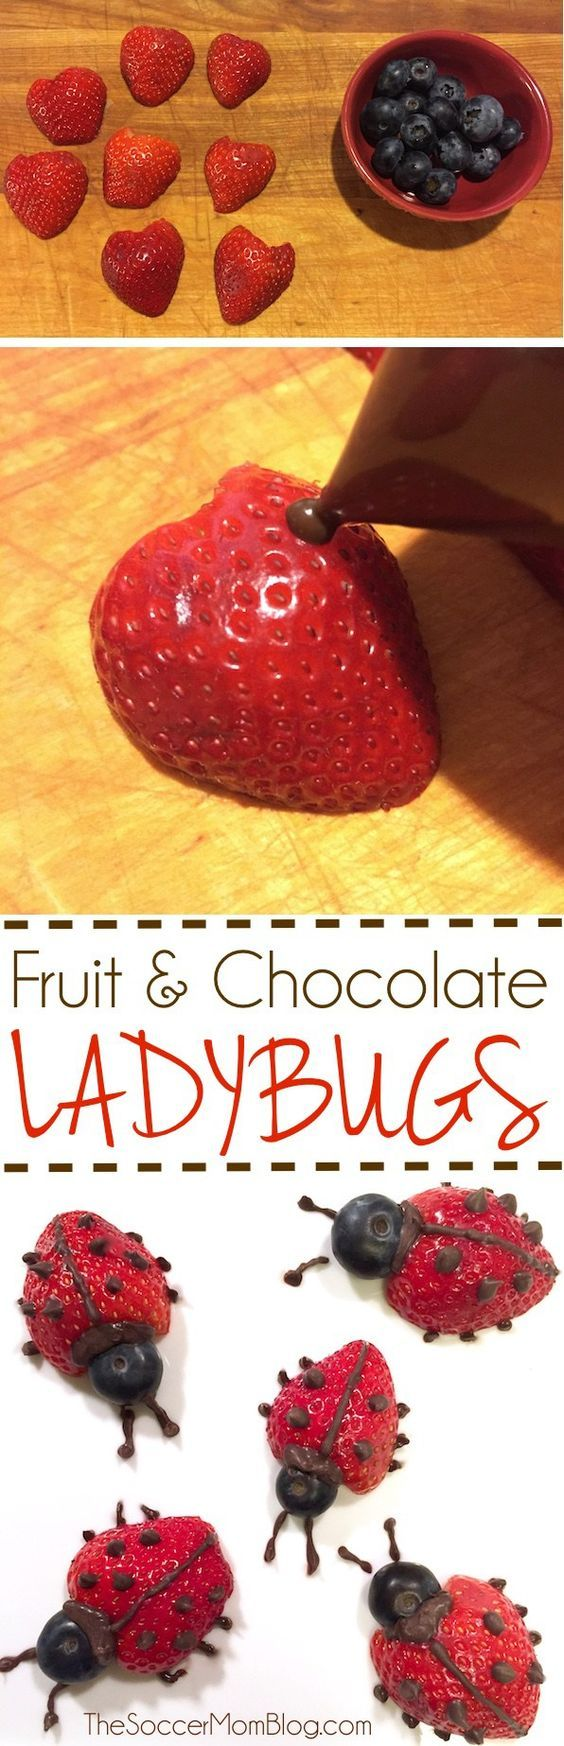 Fruit Ladybugs and Tips to Get Your Kids to Eat More Fruit